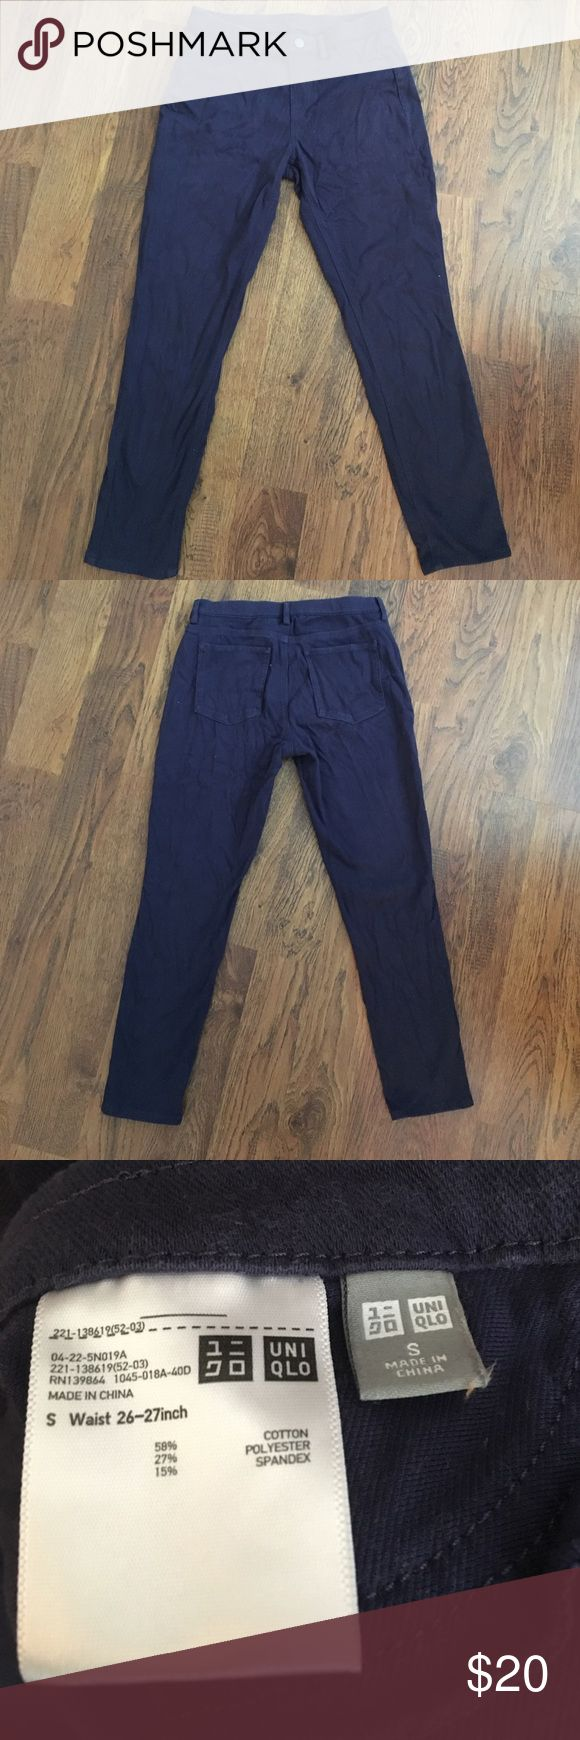 """Uniqlo cropped leggings pants, navy, size S. Cropped Uniqlo """"leggings pants"""" in navy, size S. Only worn a few times! Please contact me with any questions or offers :) Uniqlo Pants Leggings"""